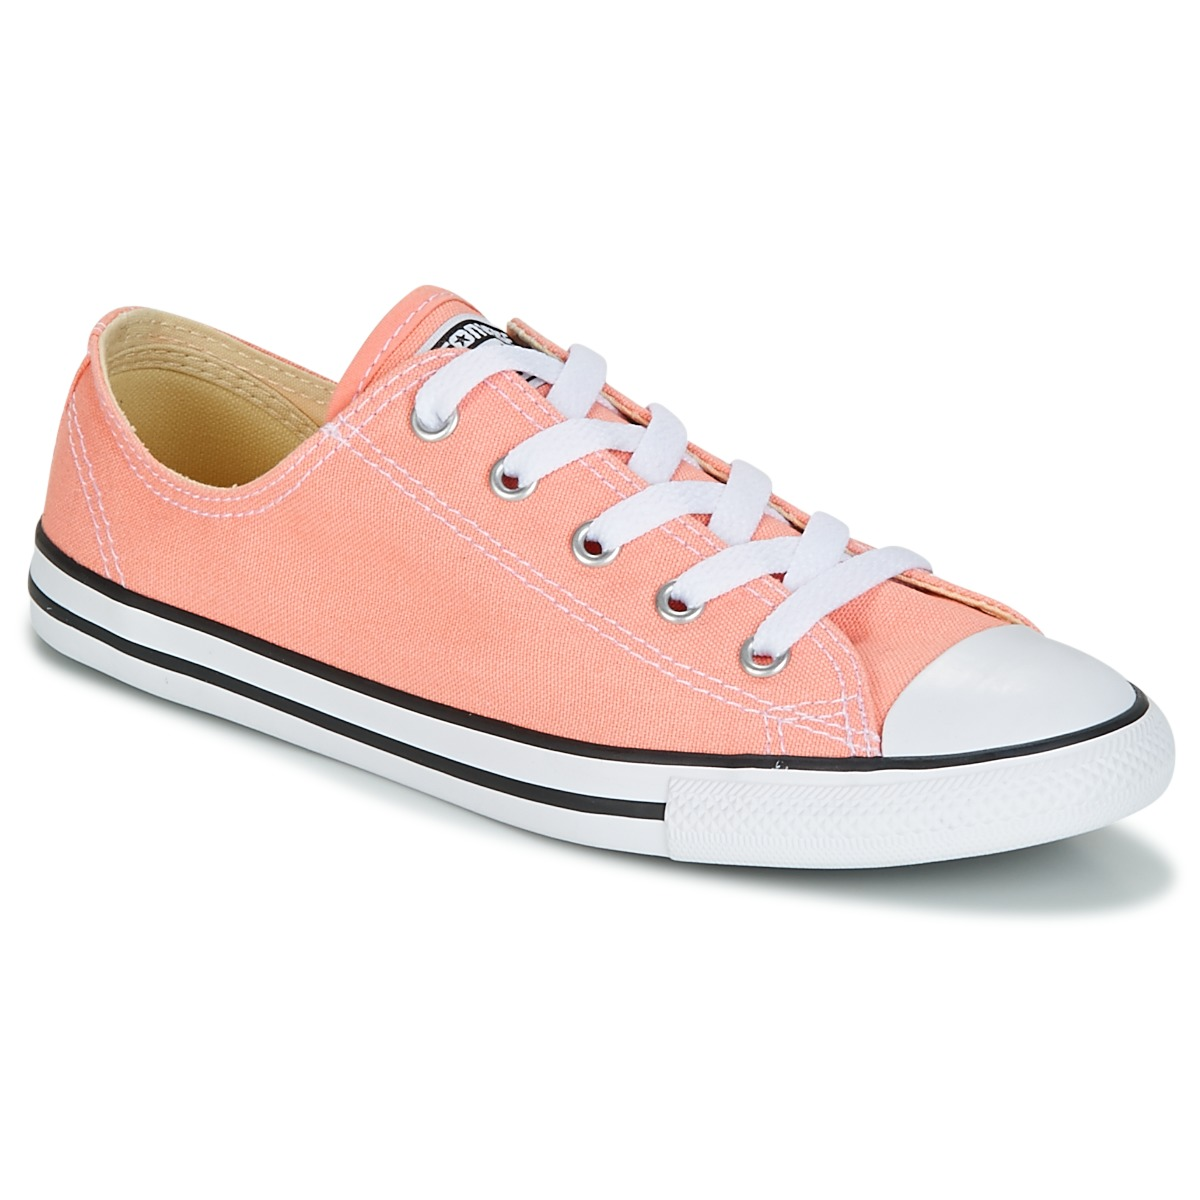 Converse Chuck Taylor All Star Dainty Ox Canvas Color Rose - Kostenloser Versand bei Spartoode ! - Schuhe Sneaker Low Damen 51,99 €